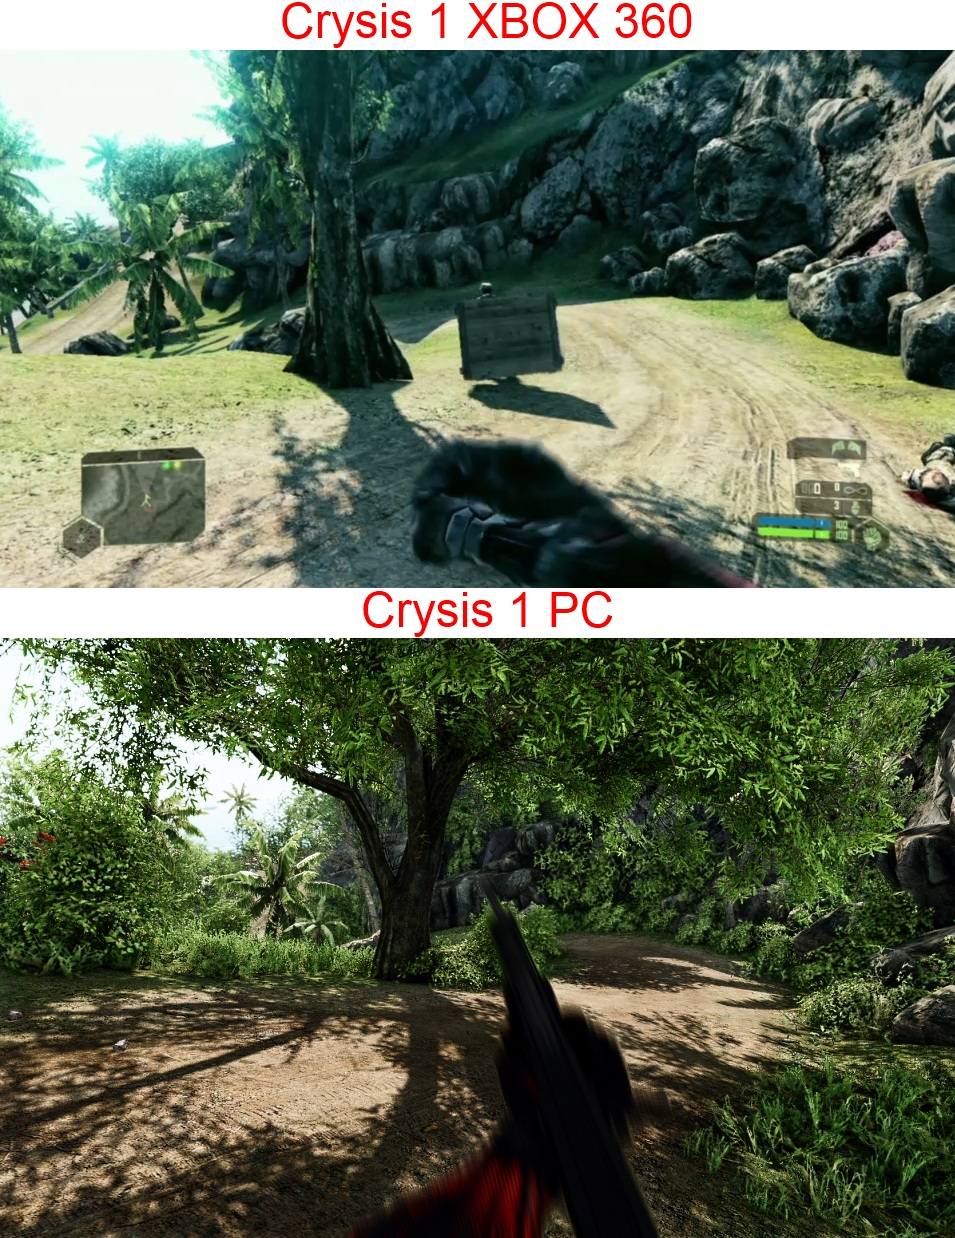 insanecyclone games edit campaign remasteredxblpsn bucks possibly crysis